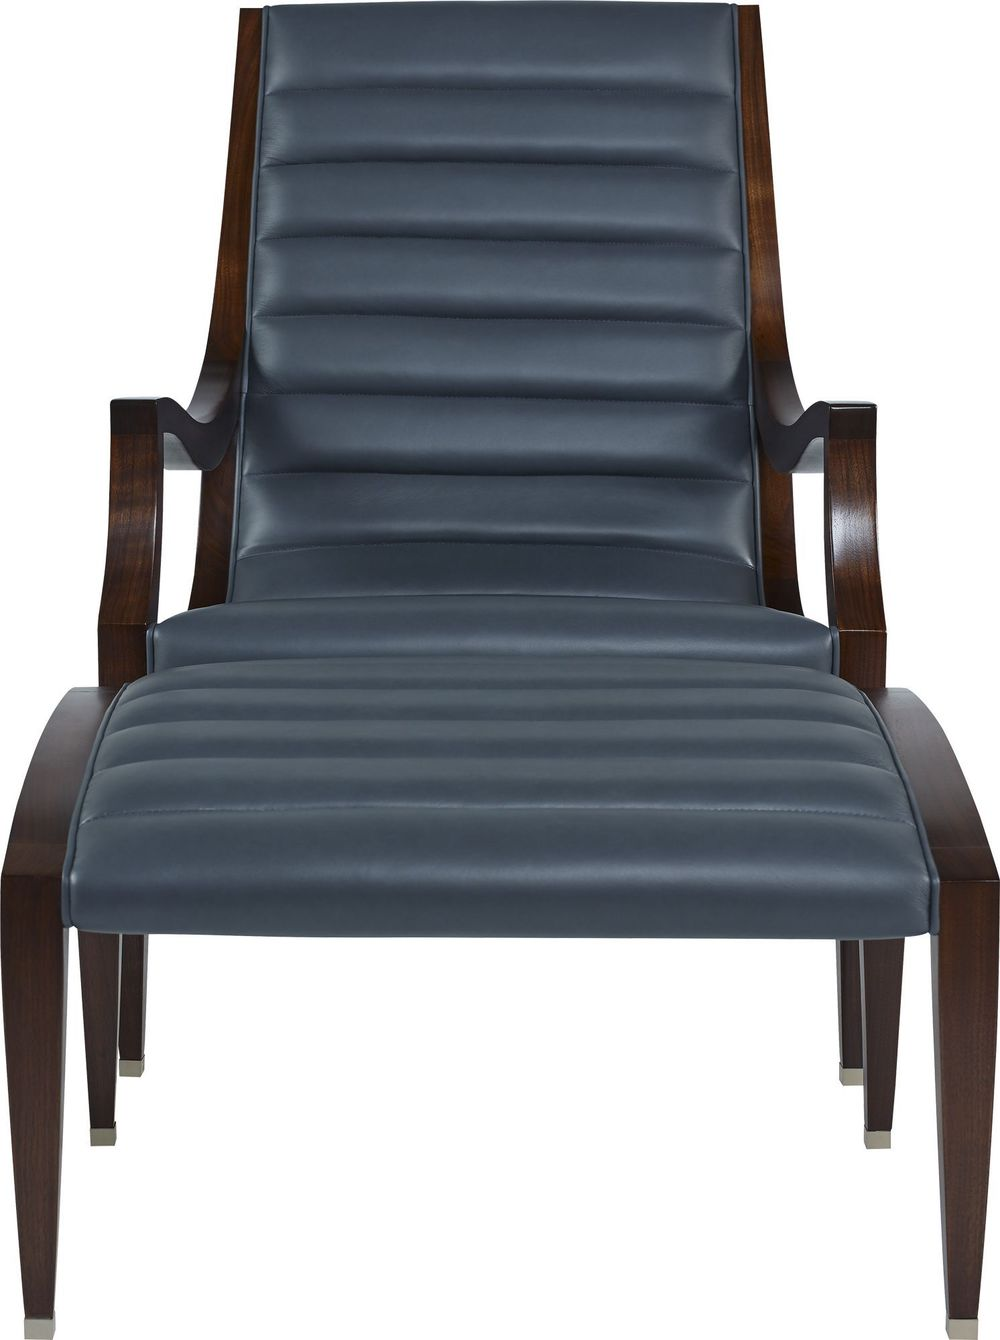 Baker Furniture - Courbette Lounge Chair